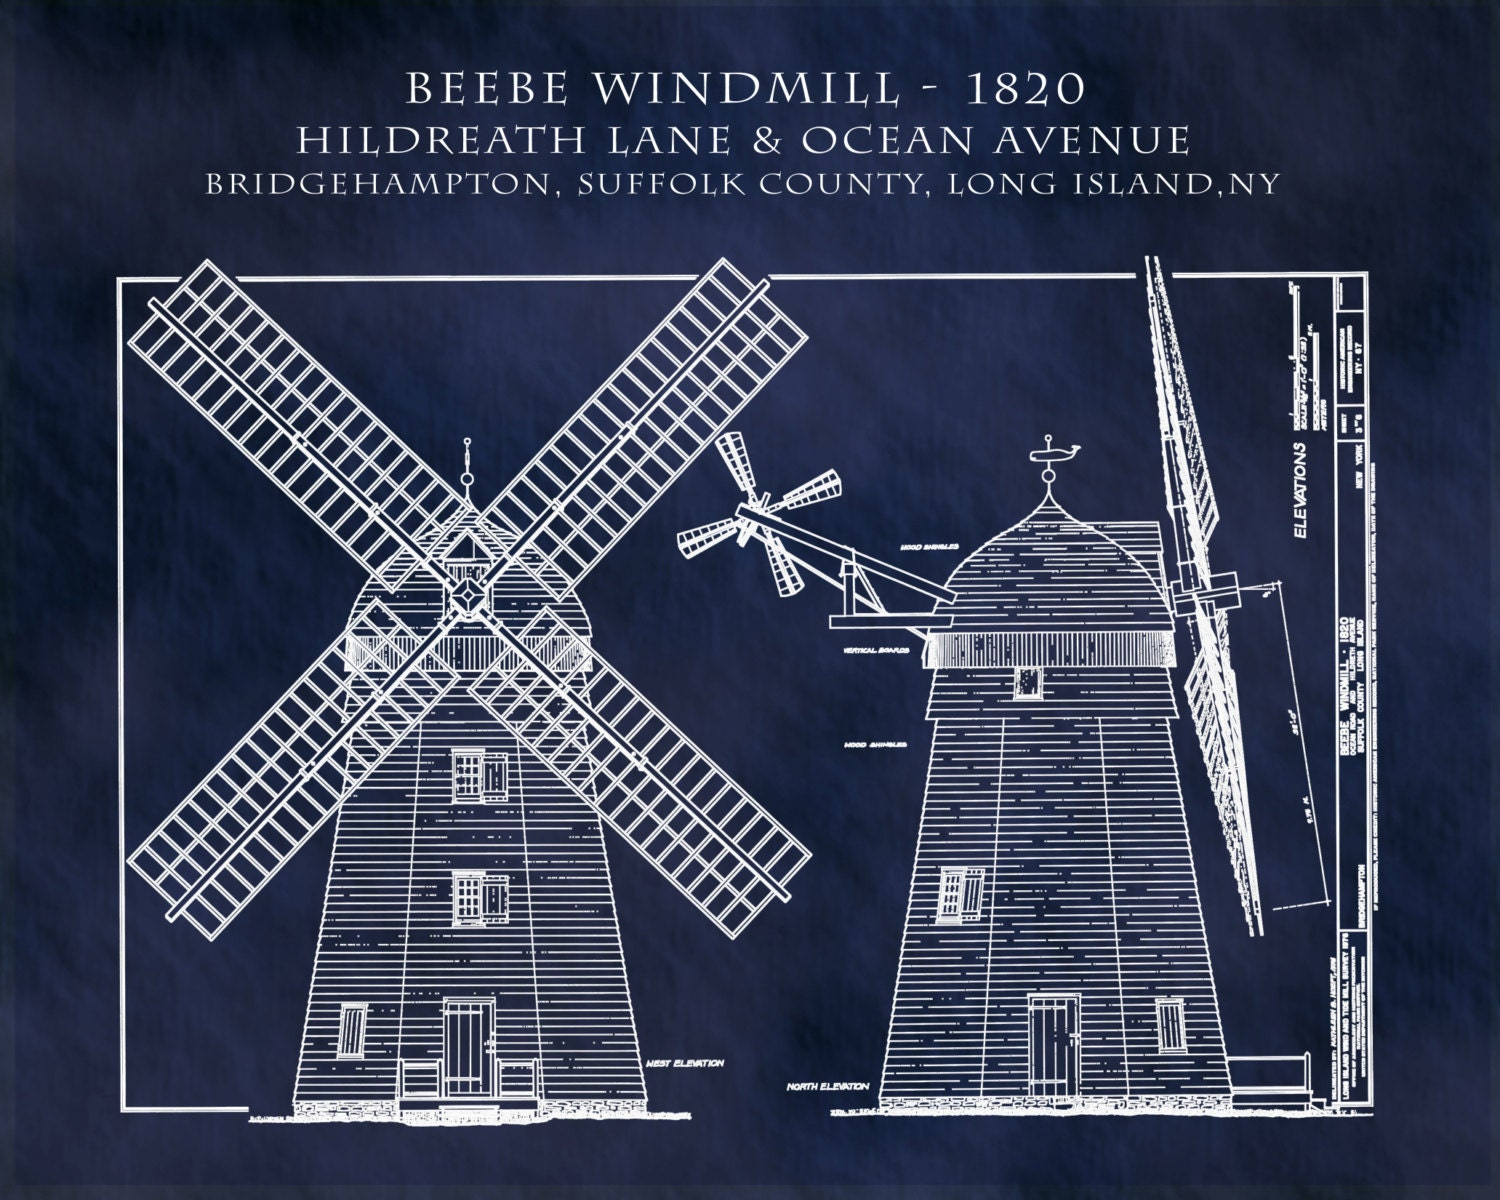 1820 beebe windmill architectural art print poster drawing 1820 beebe windmill architectural art print poster drawing illustration architecture blueprint suffolk county long island malvernweather Image collections